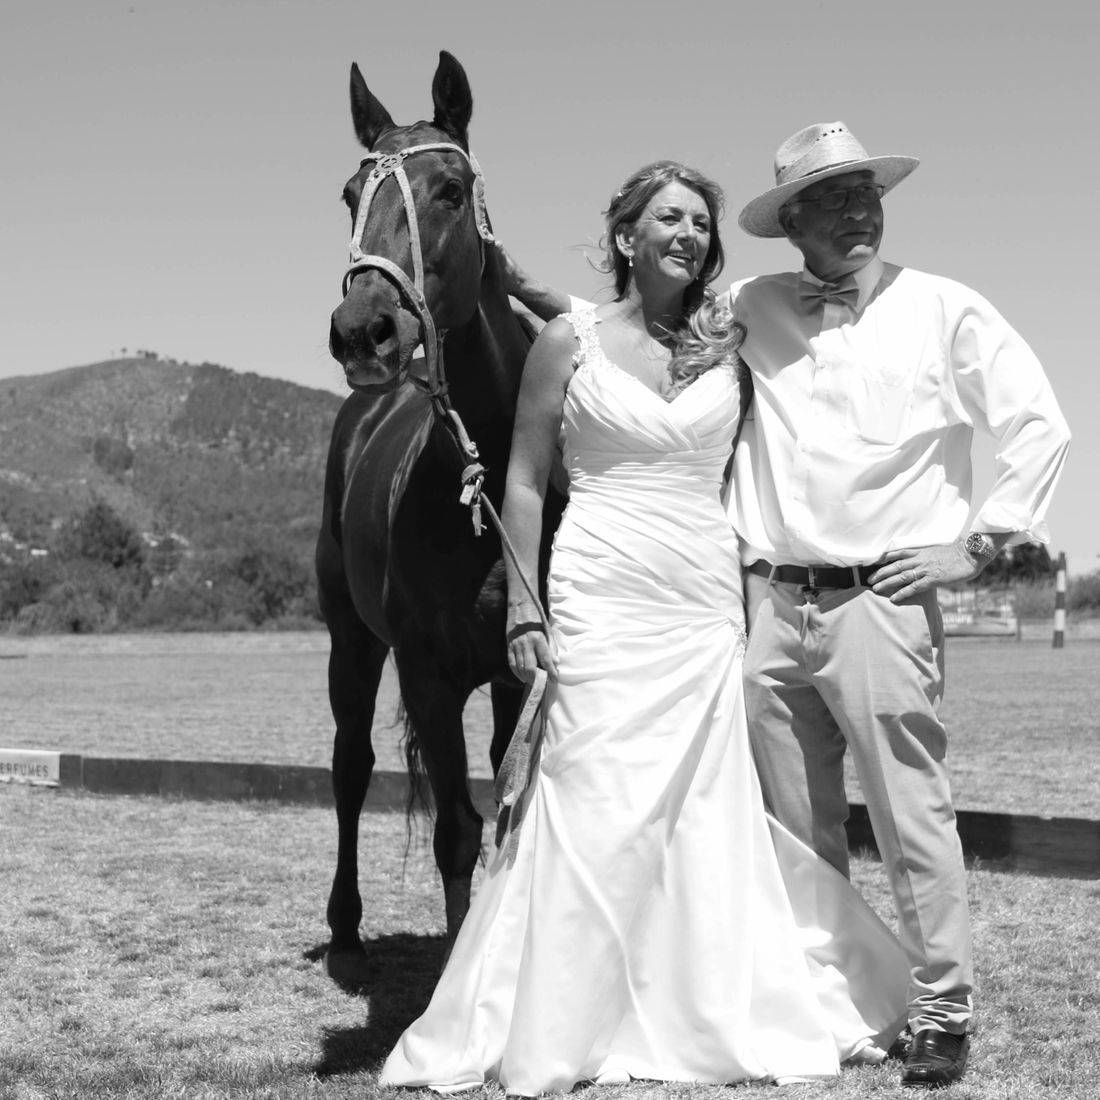 Ibiza wedding, polo wedding, horse wedding, ibiza 2017